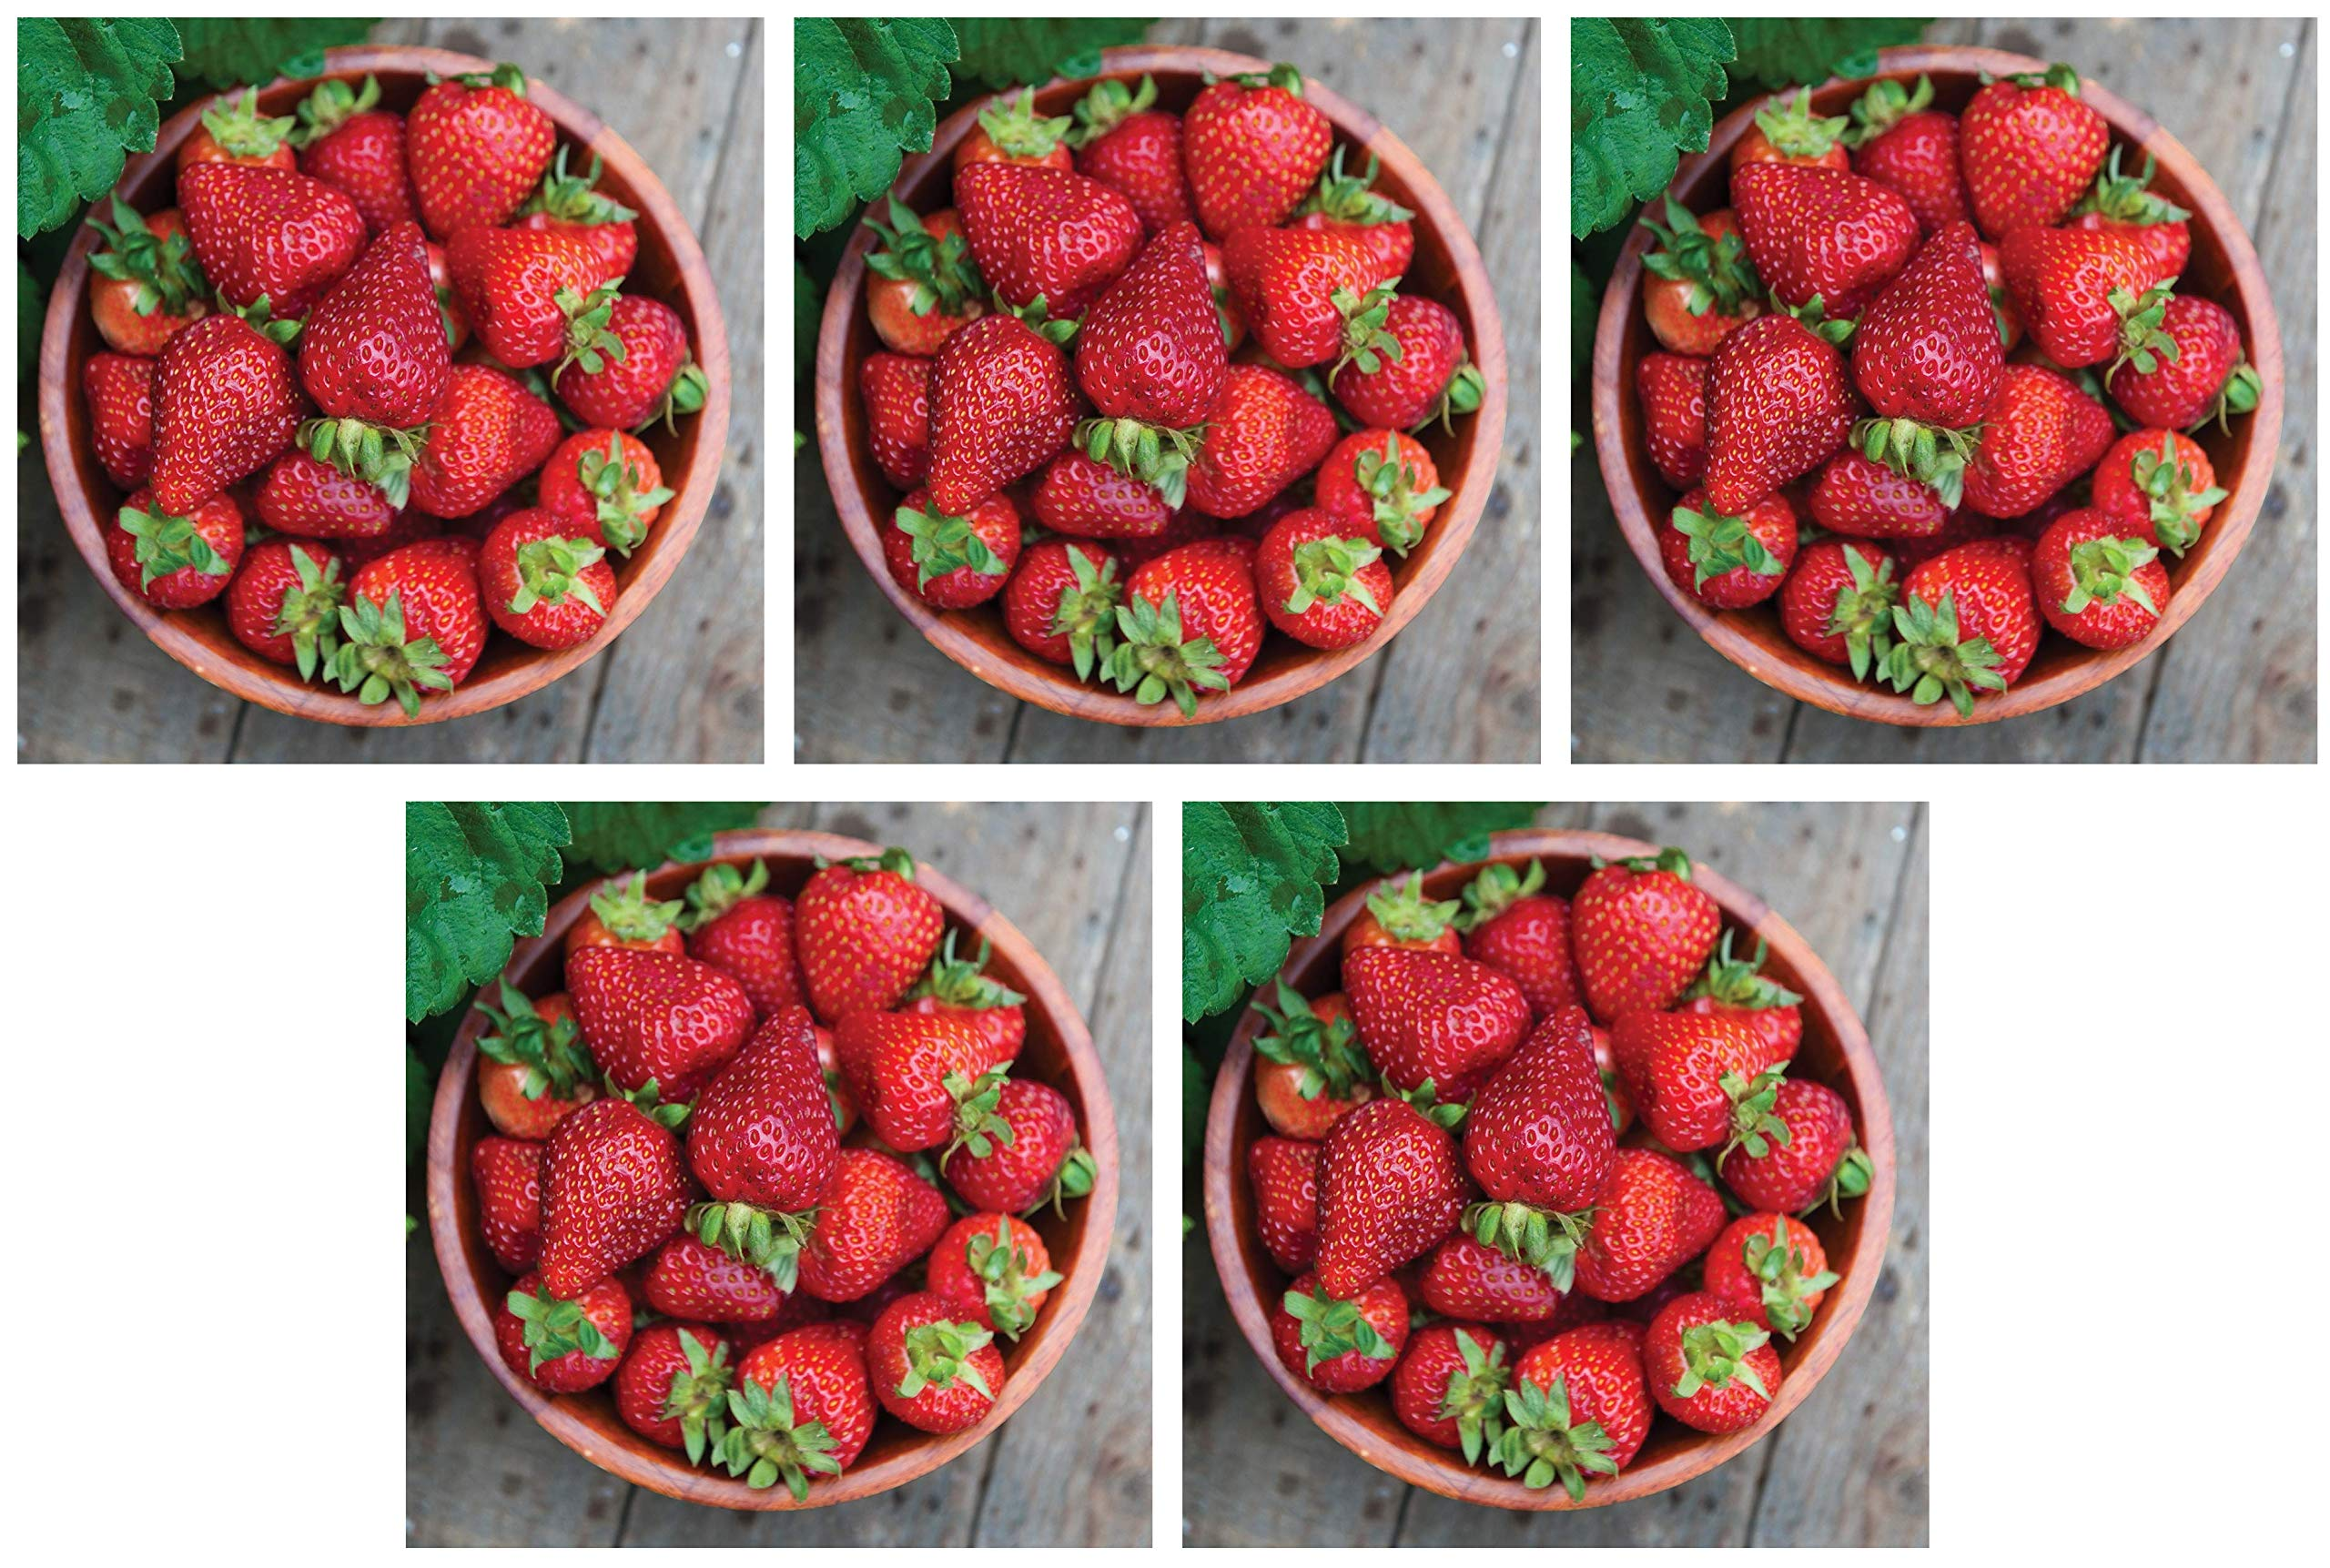 Burpee 'Seascape' Ever-Bearing Strawberry Shipped as 25 Bare Root Plants (Fіvе Расk) by  (Image #1)